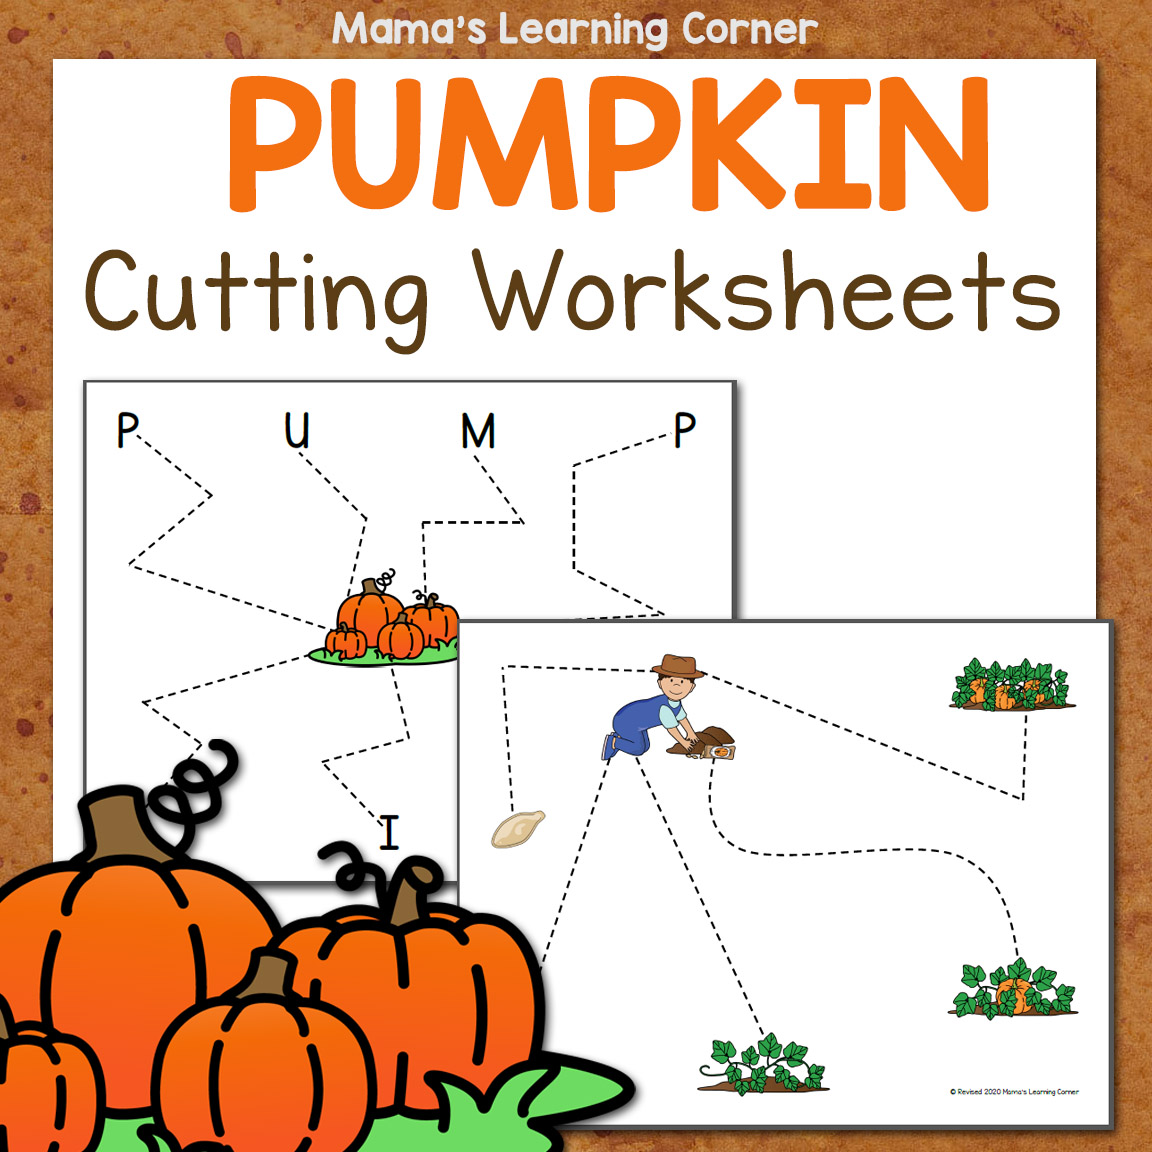 Pumpkin Cutting Worksheets